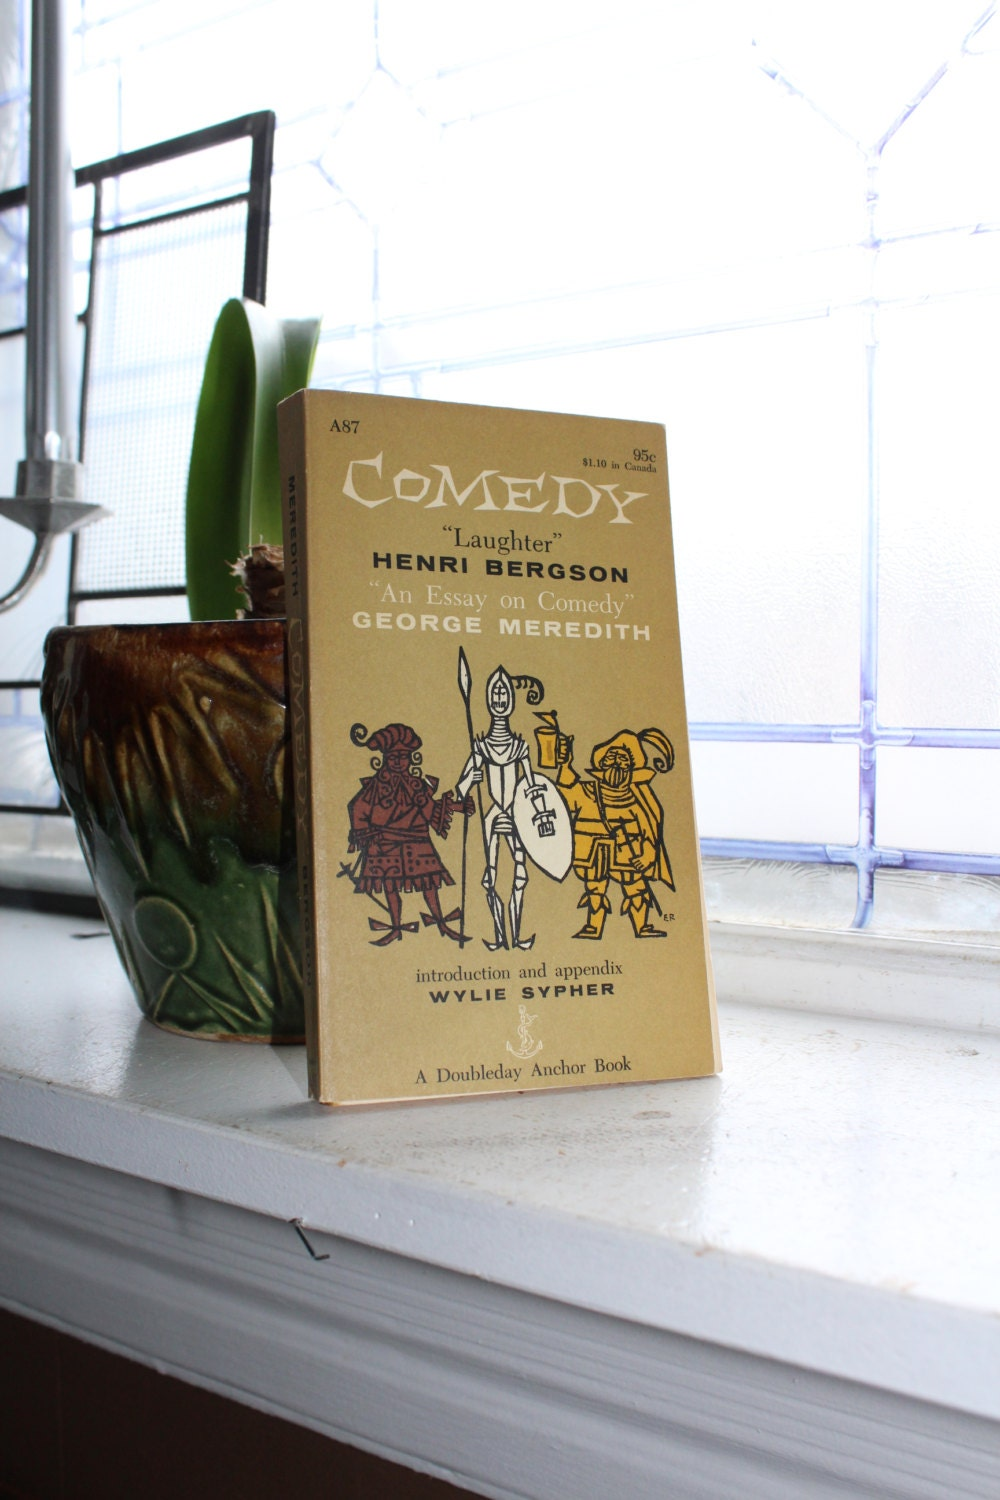 "bergson by by comedy comedy essay george henri laughter meredith Henri bergson suggests that laughter exists only if one is disconnected with one's emotional centre, writing: ""now step aside, look upon life as a disinterested spectator: many a drama will turn into a comedy"" (63."